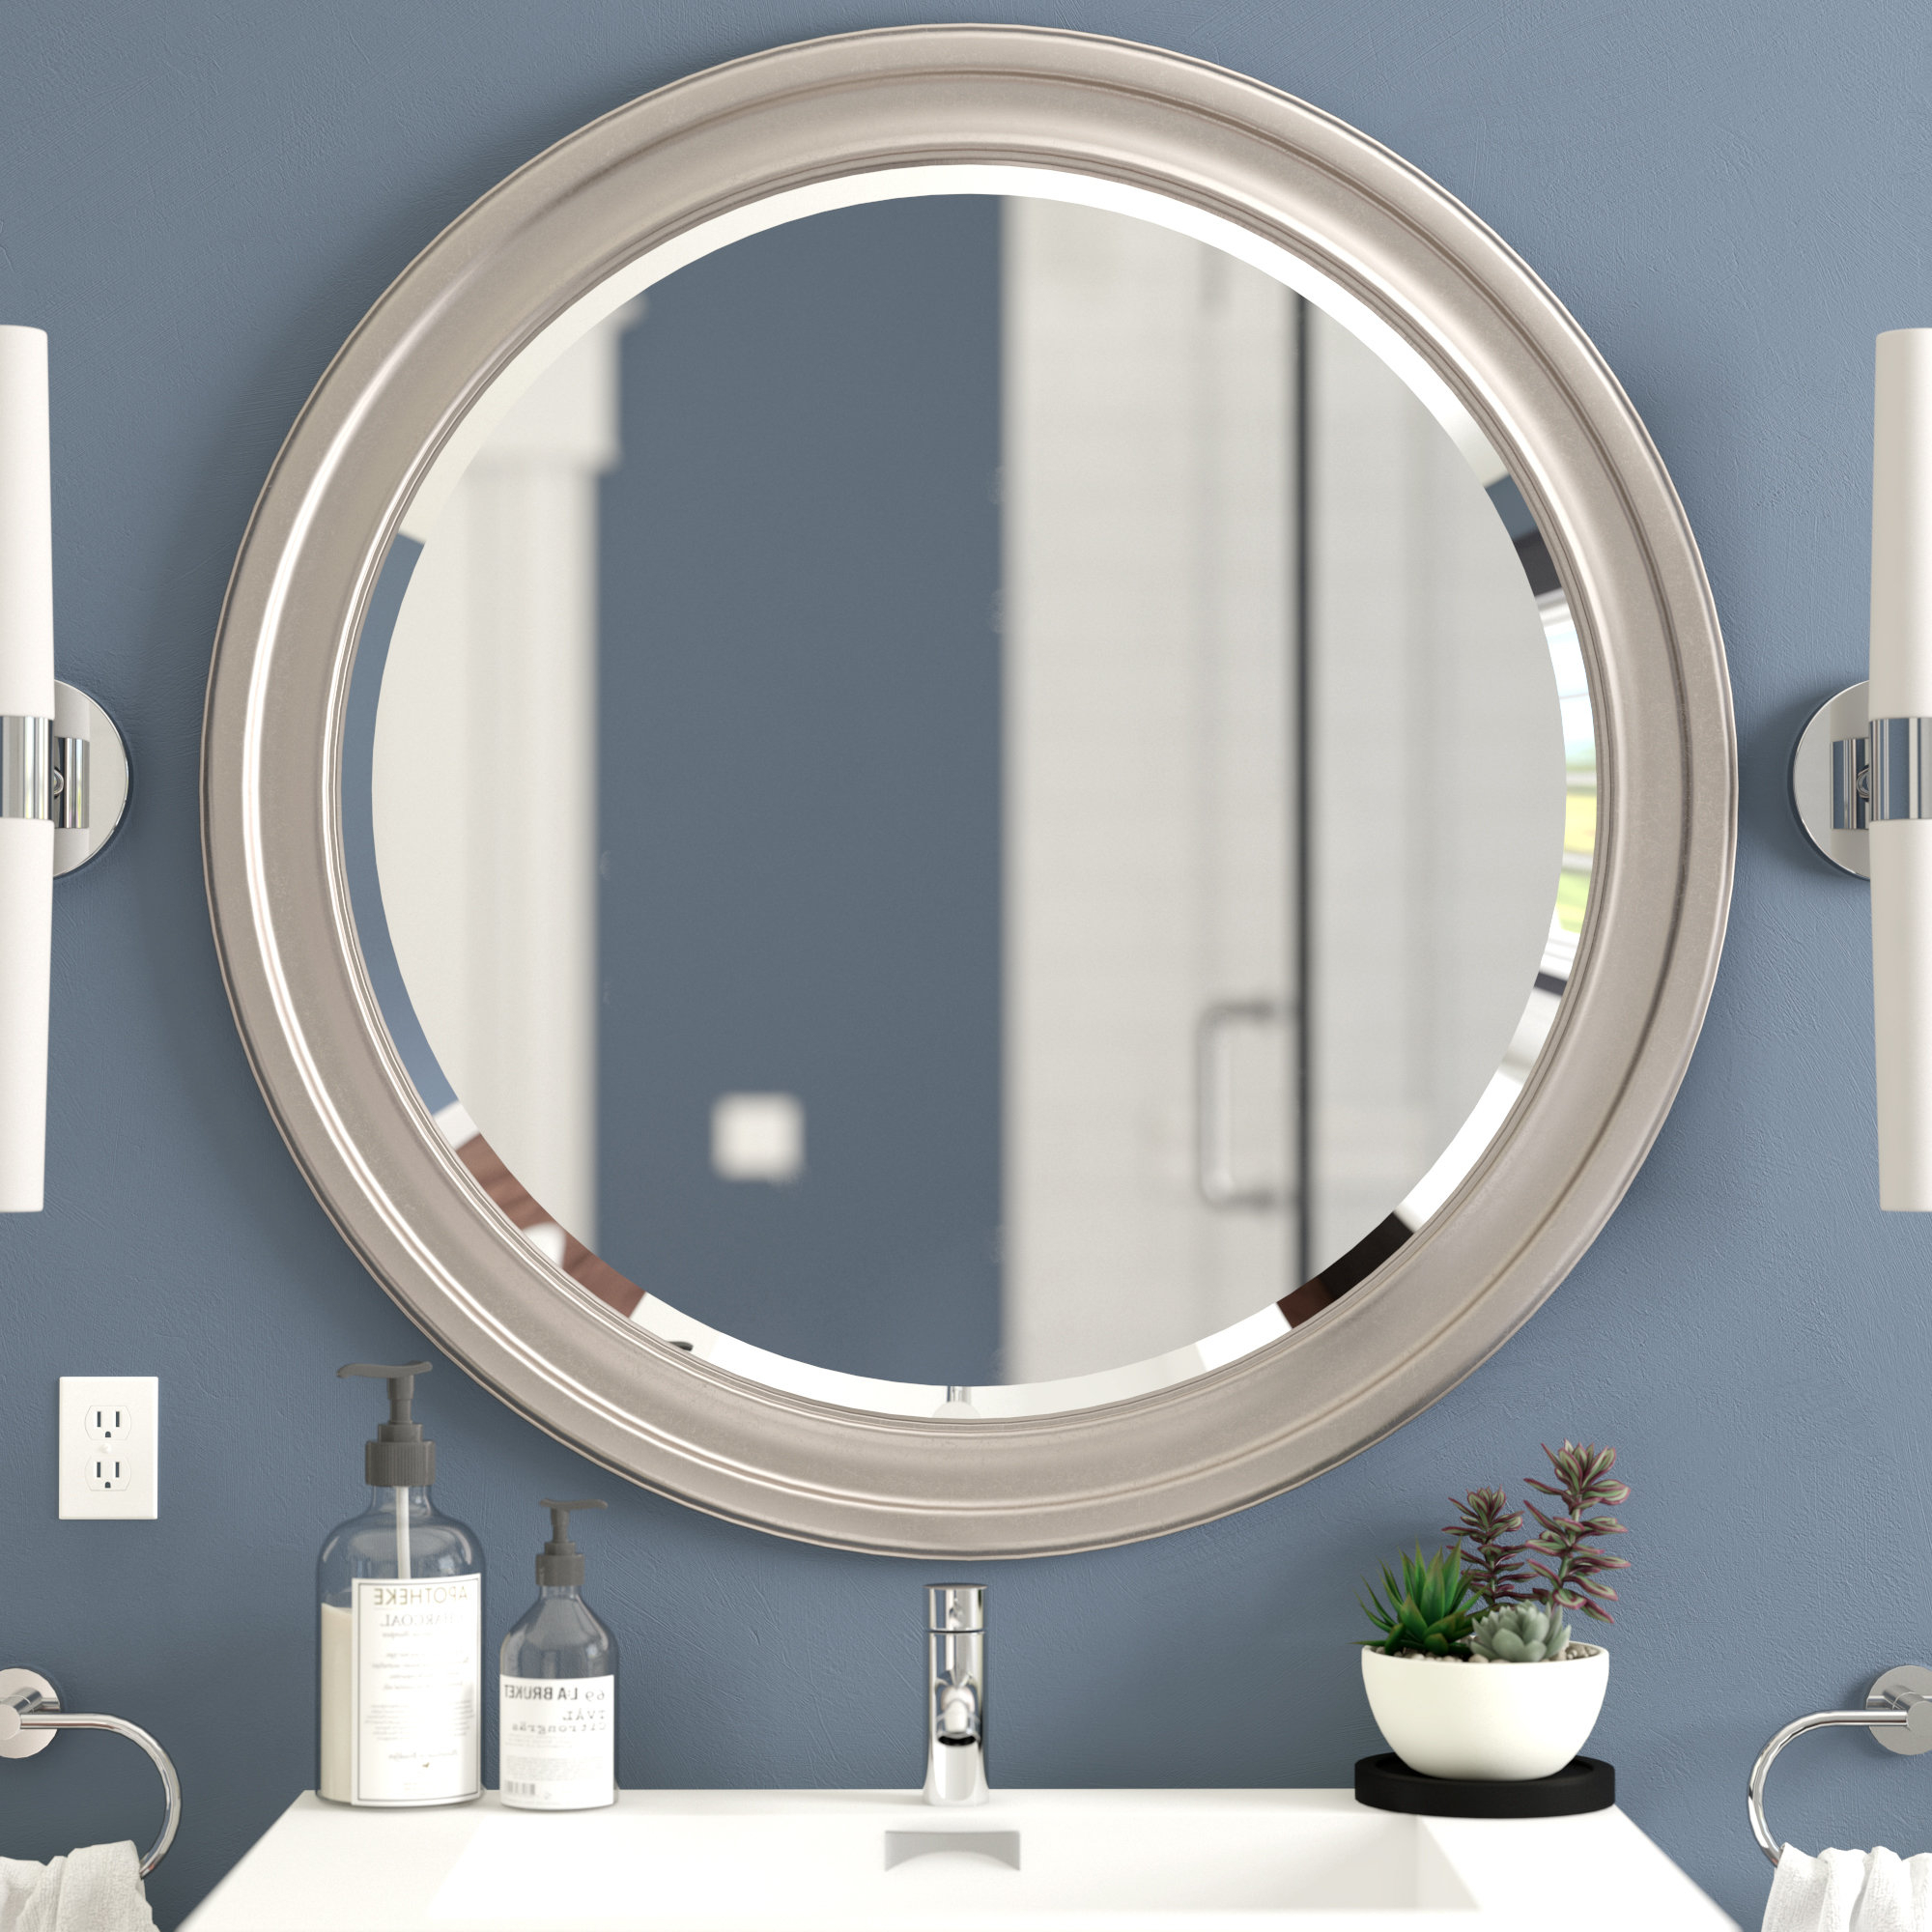 Charters Towers Accent Mirrors Throughout Popular Charters Towers Accent Mirror (View 1 of 20)